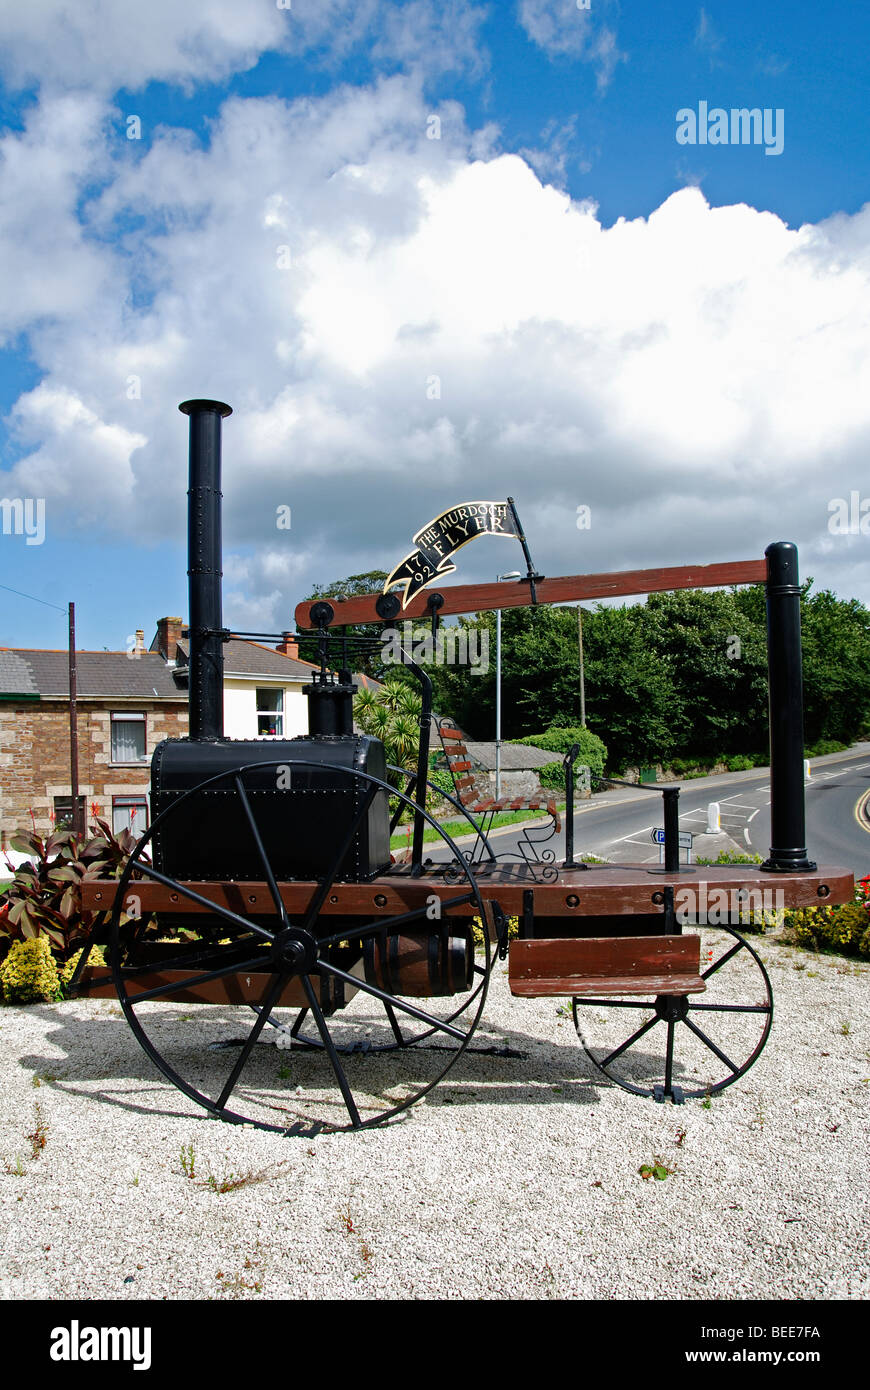 a replica of the ' murdoch flyer ' in redruth,cornwall( one of the first steam road transport engines ) - Stock Image